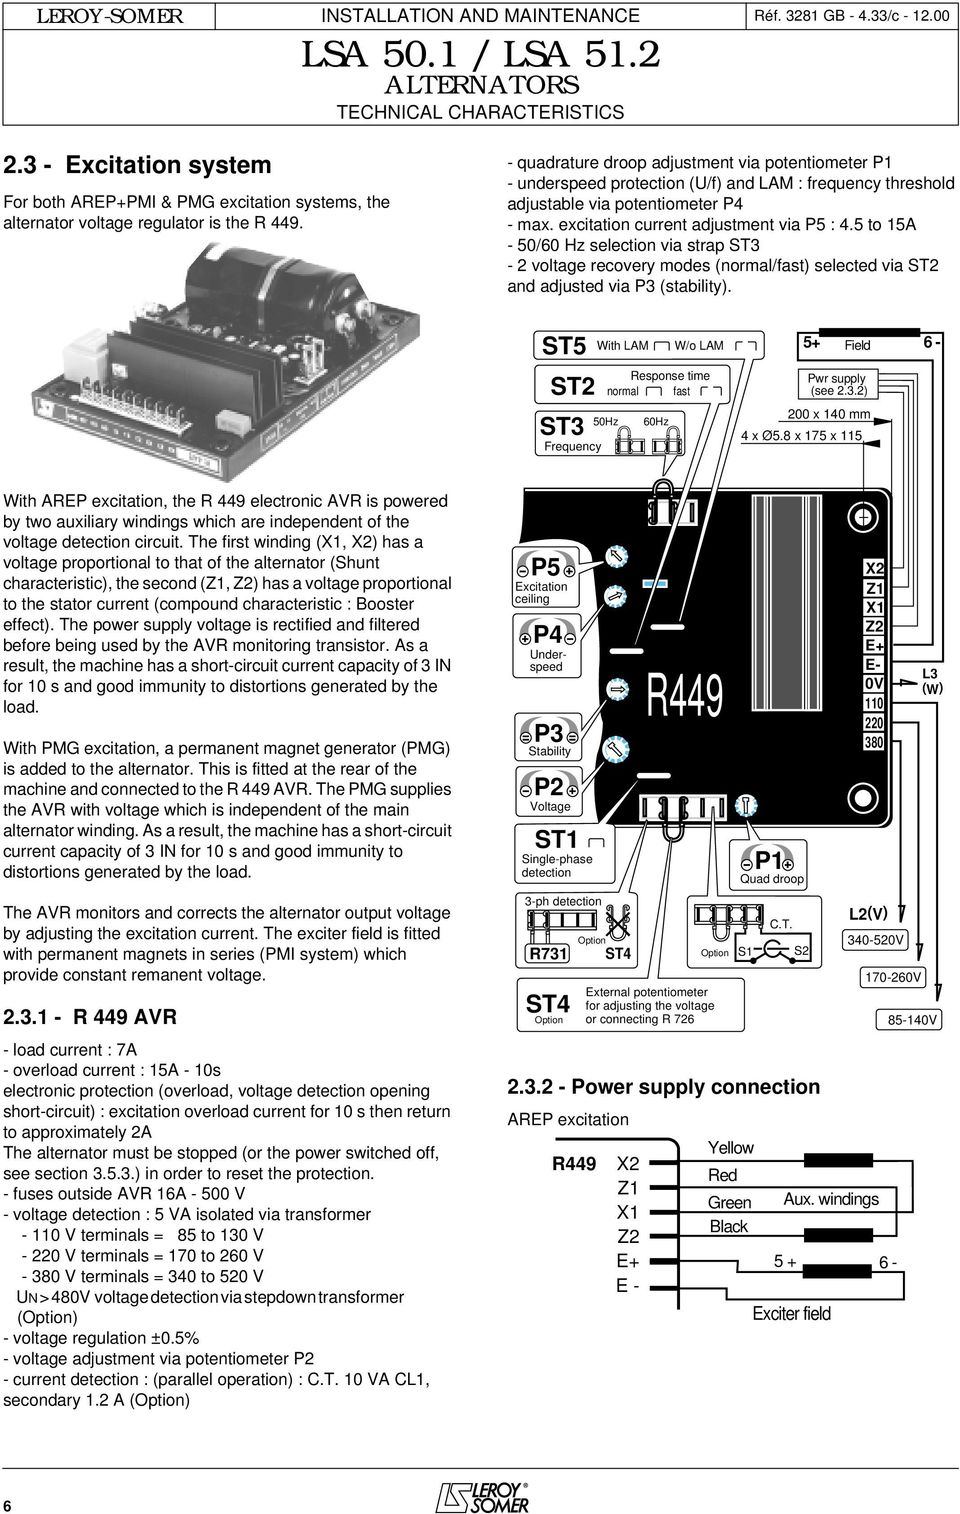 Users Guide And Maintenance Manual Leroy Somer Alternators Lsa 501 For Threephase Alternator Automotive Voltage Regulator Circuit System 5 To 15a 50 60 Hz Selection Via Strap St3 2 Recovery